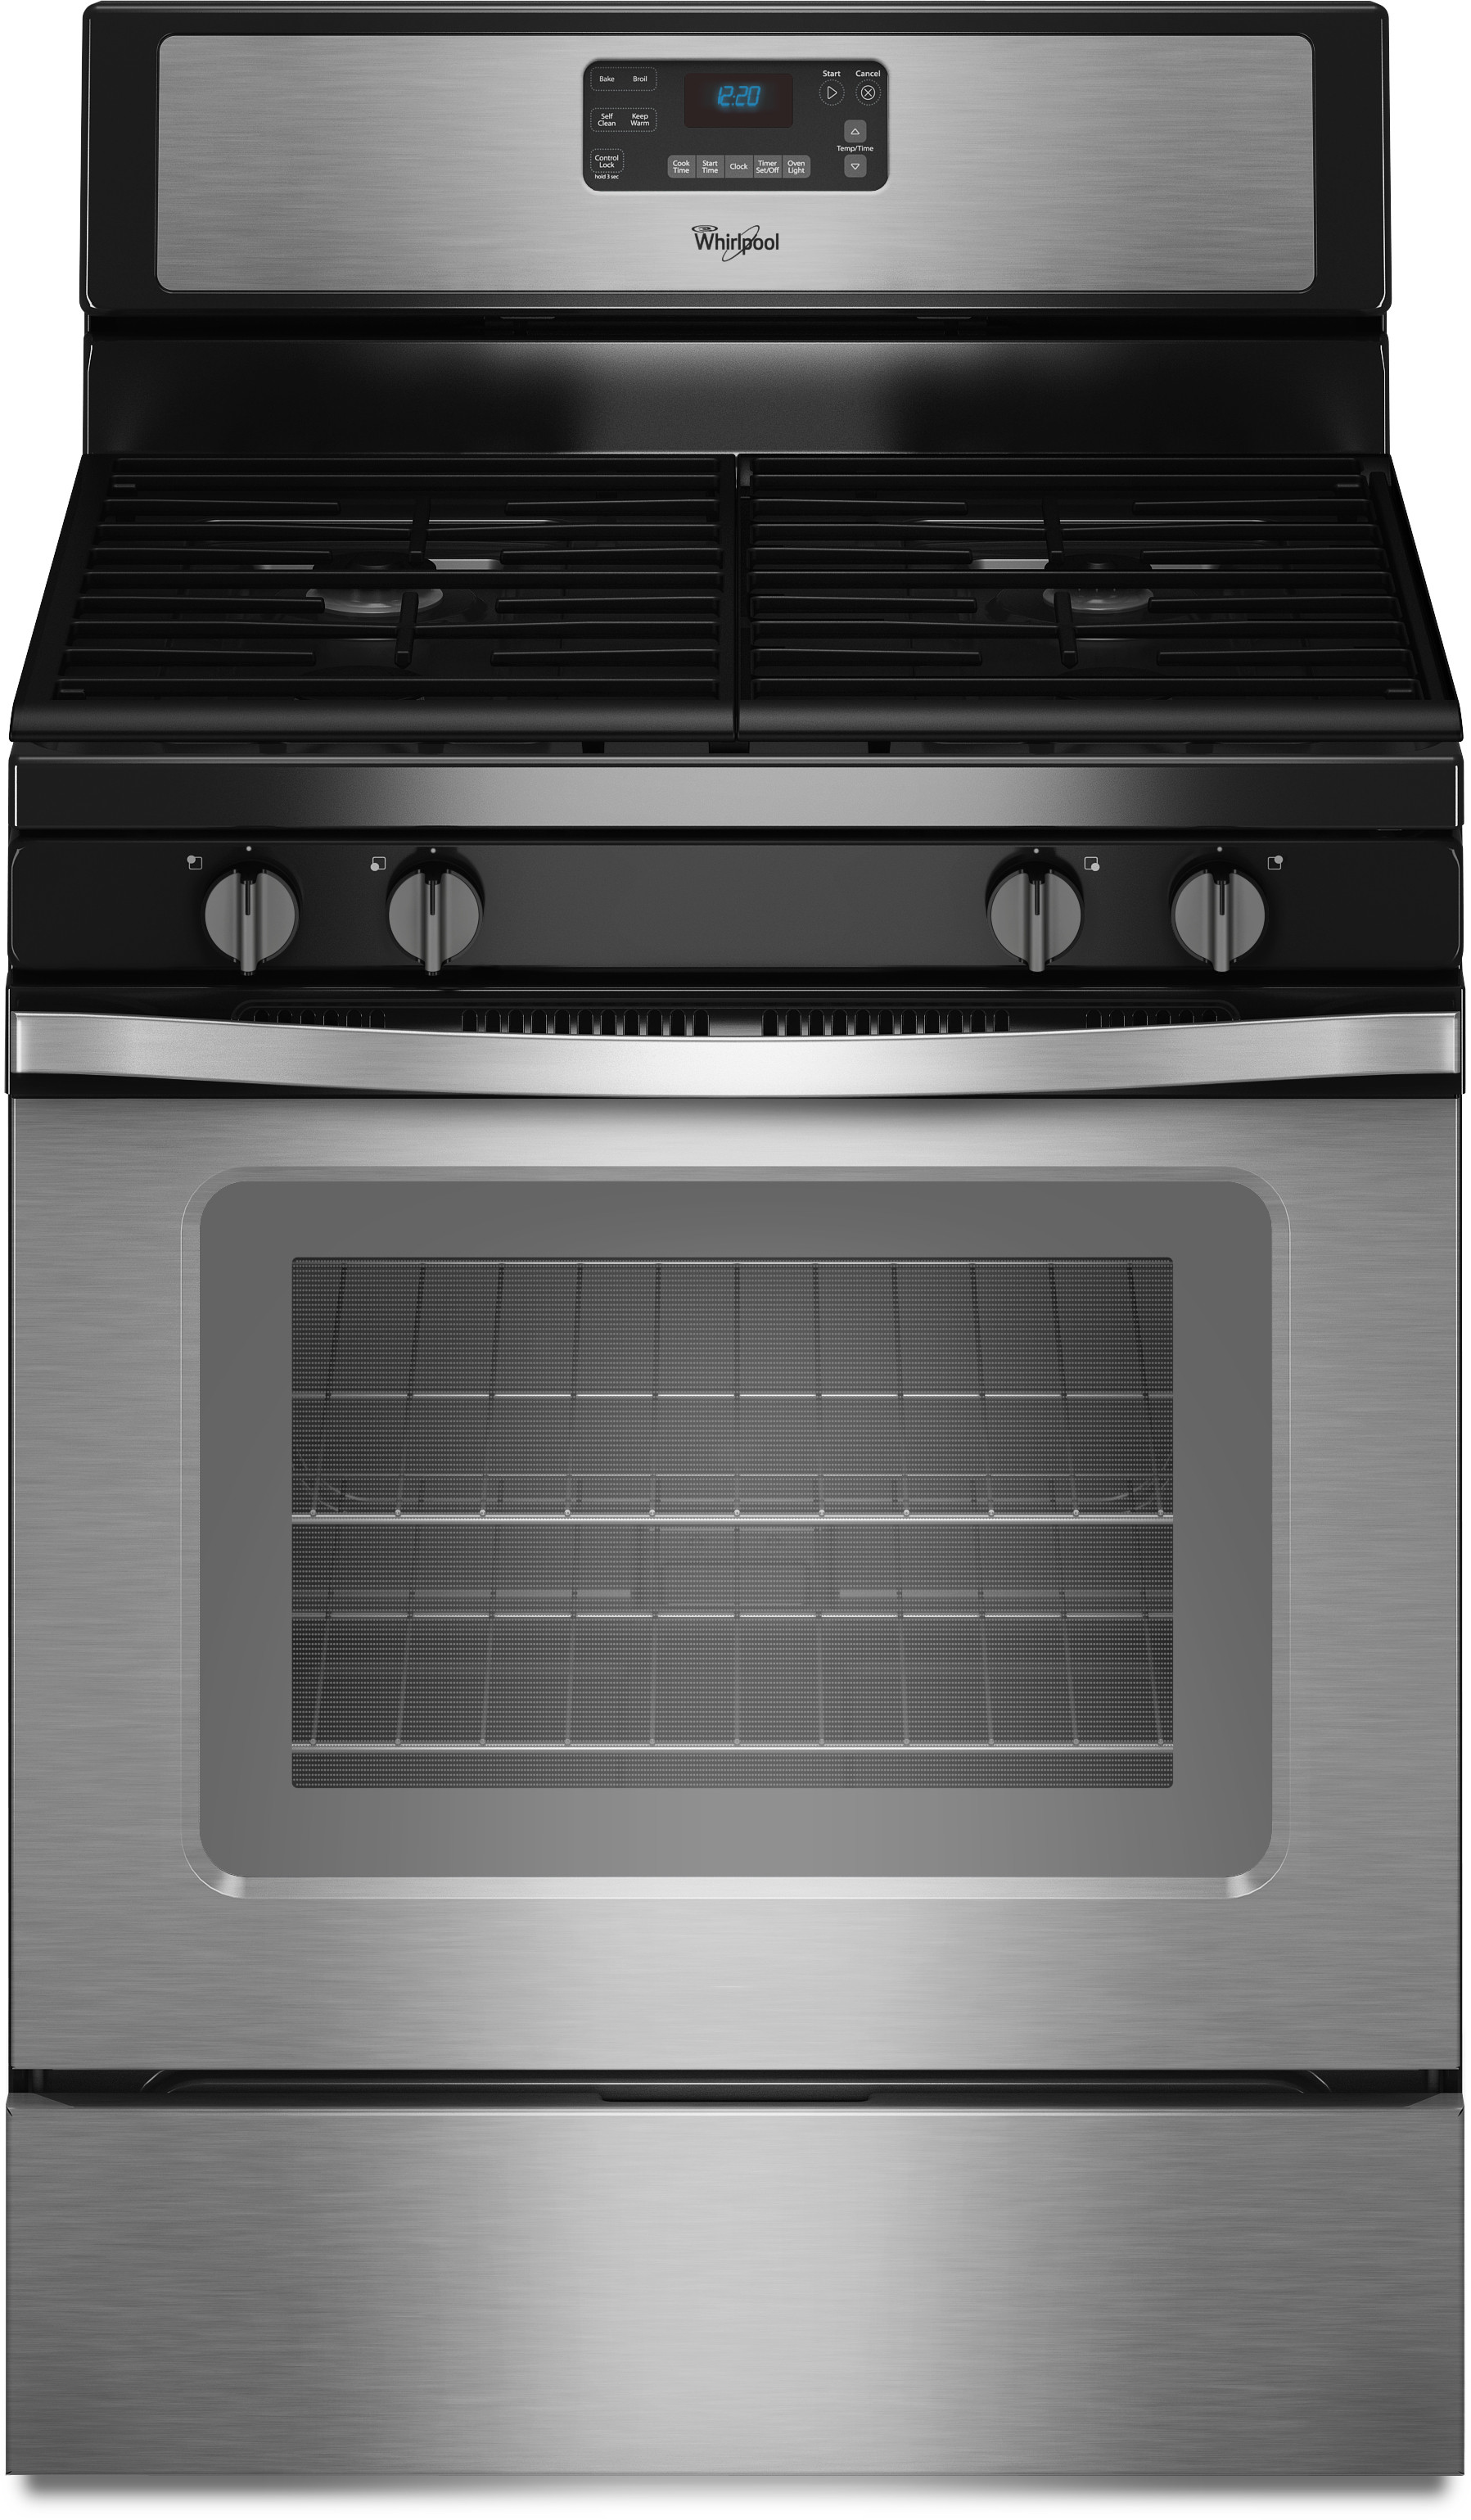 Whirlpool Wfg515s0es 30 Inch Freestanding Gas Range With Accubake Sdheat Burners Accusimmer Burner Self Cleaning 4 Sealed 5 0 Cu Ft